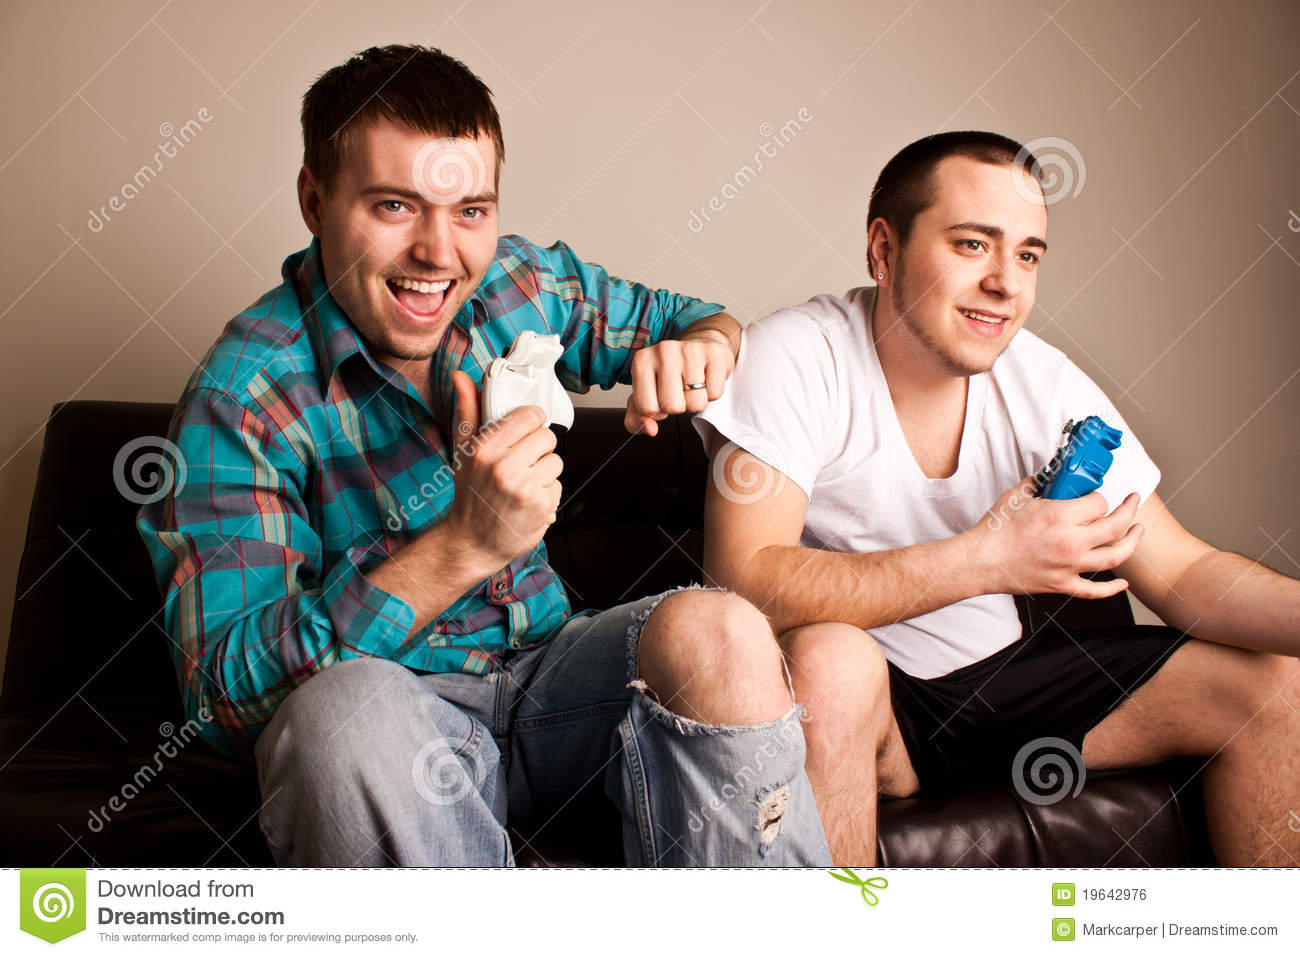 Guys Video Games Fun